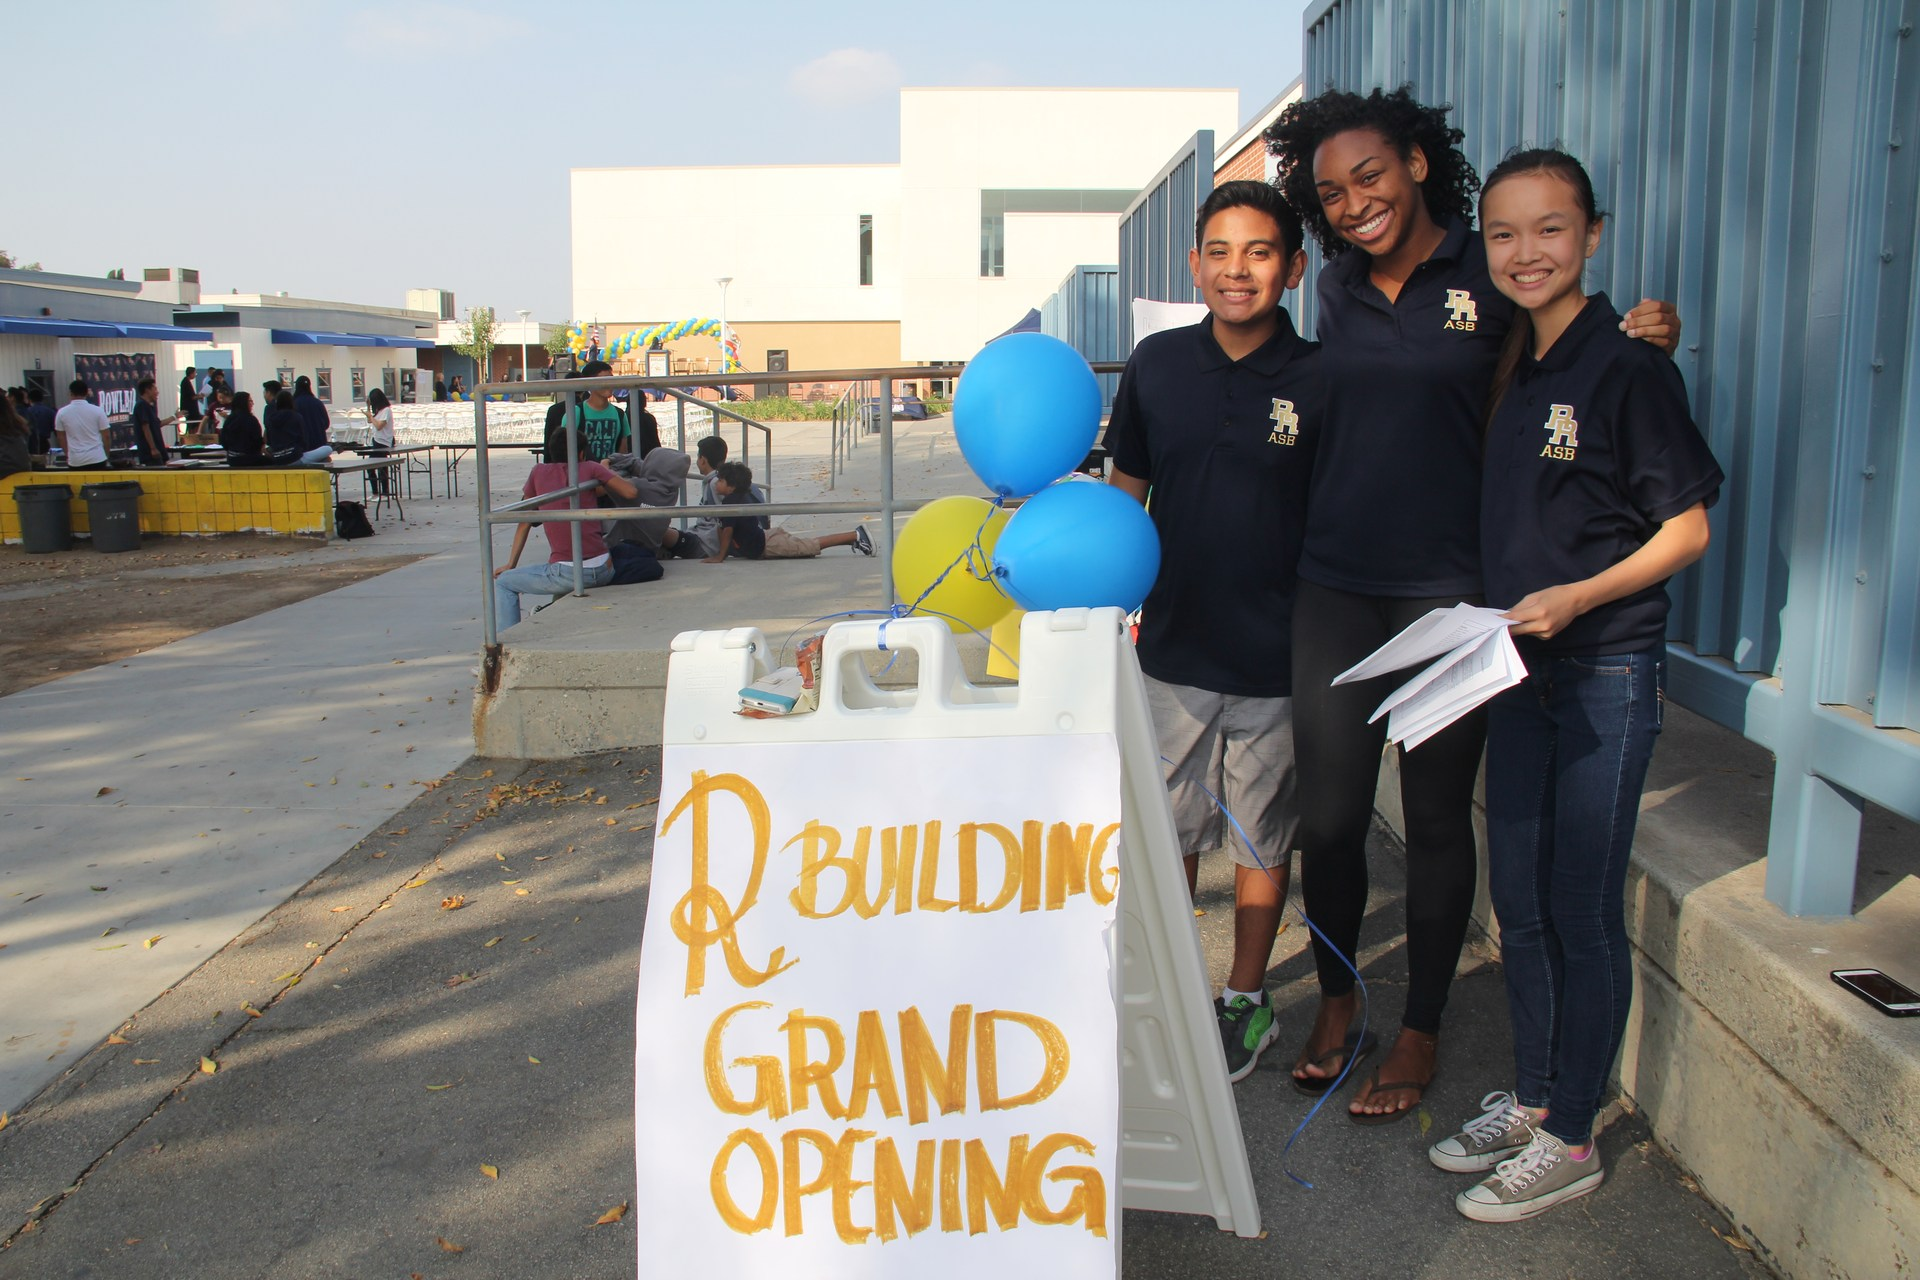 Grand Opening of Building R